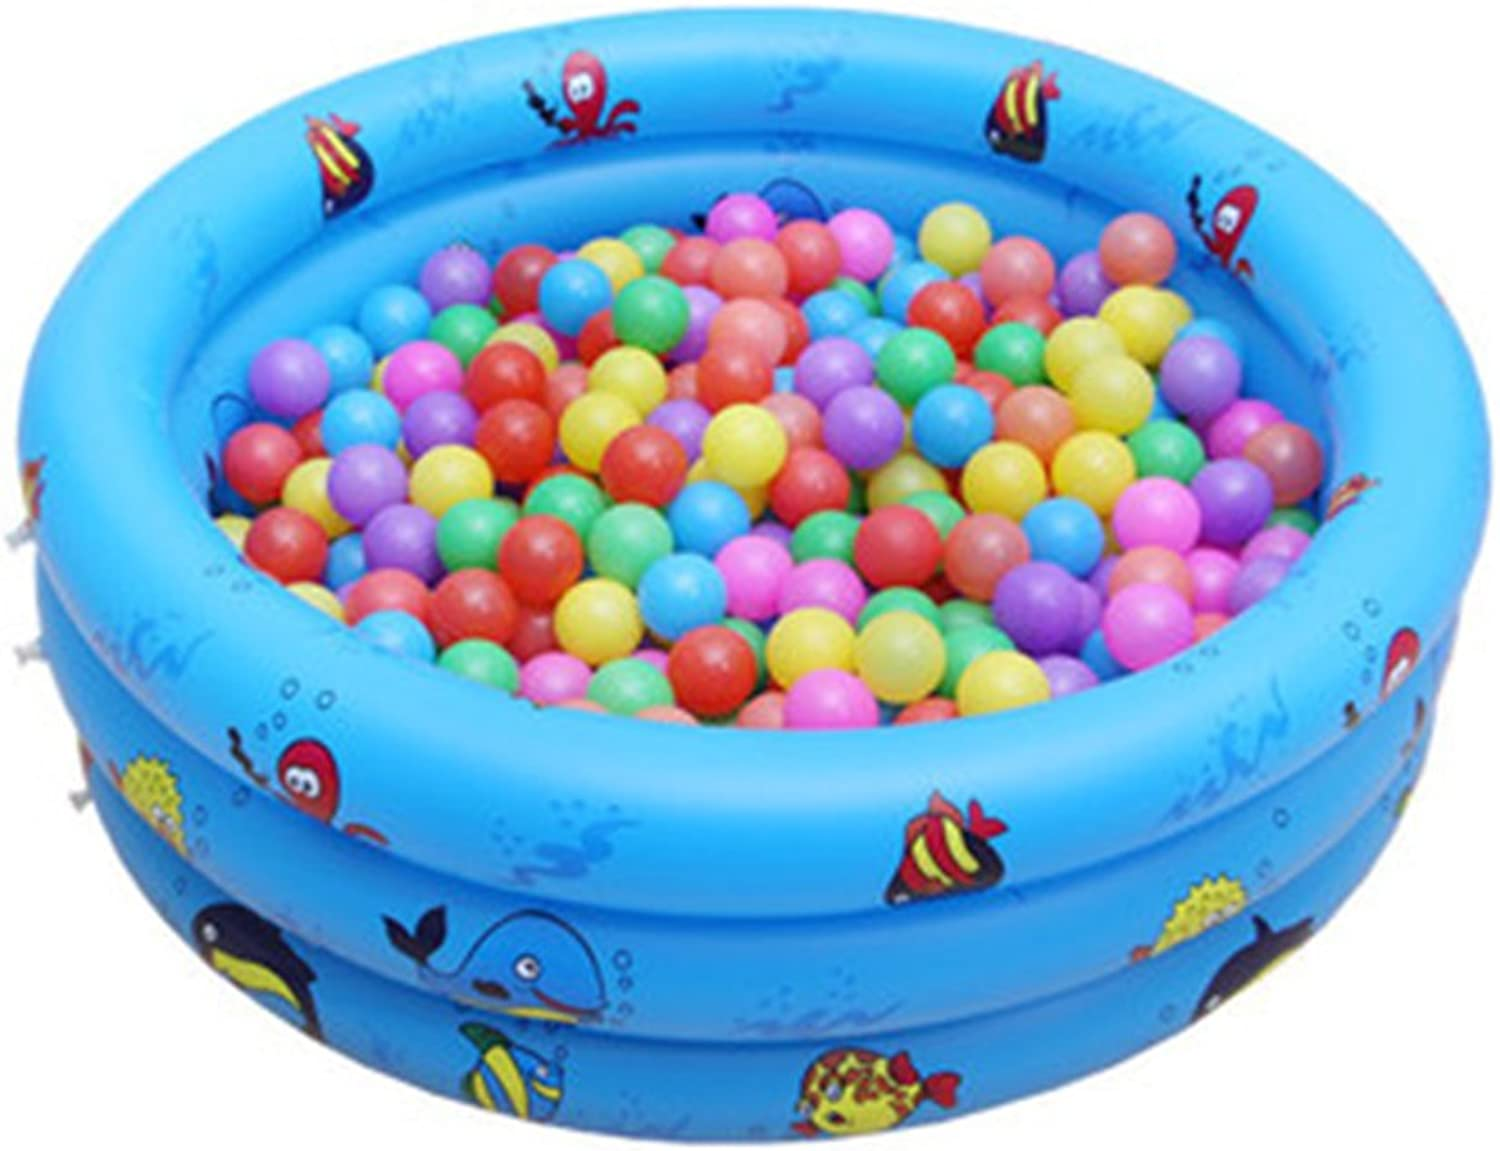 Drasawee Kids 3 Rings Inflatable Bath Tub Swimming Paddling Pool Ball Pit bluee 110cm